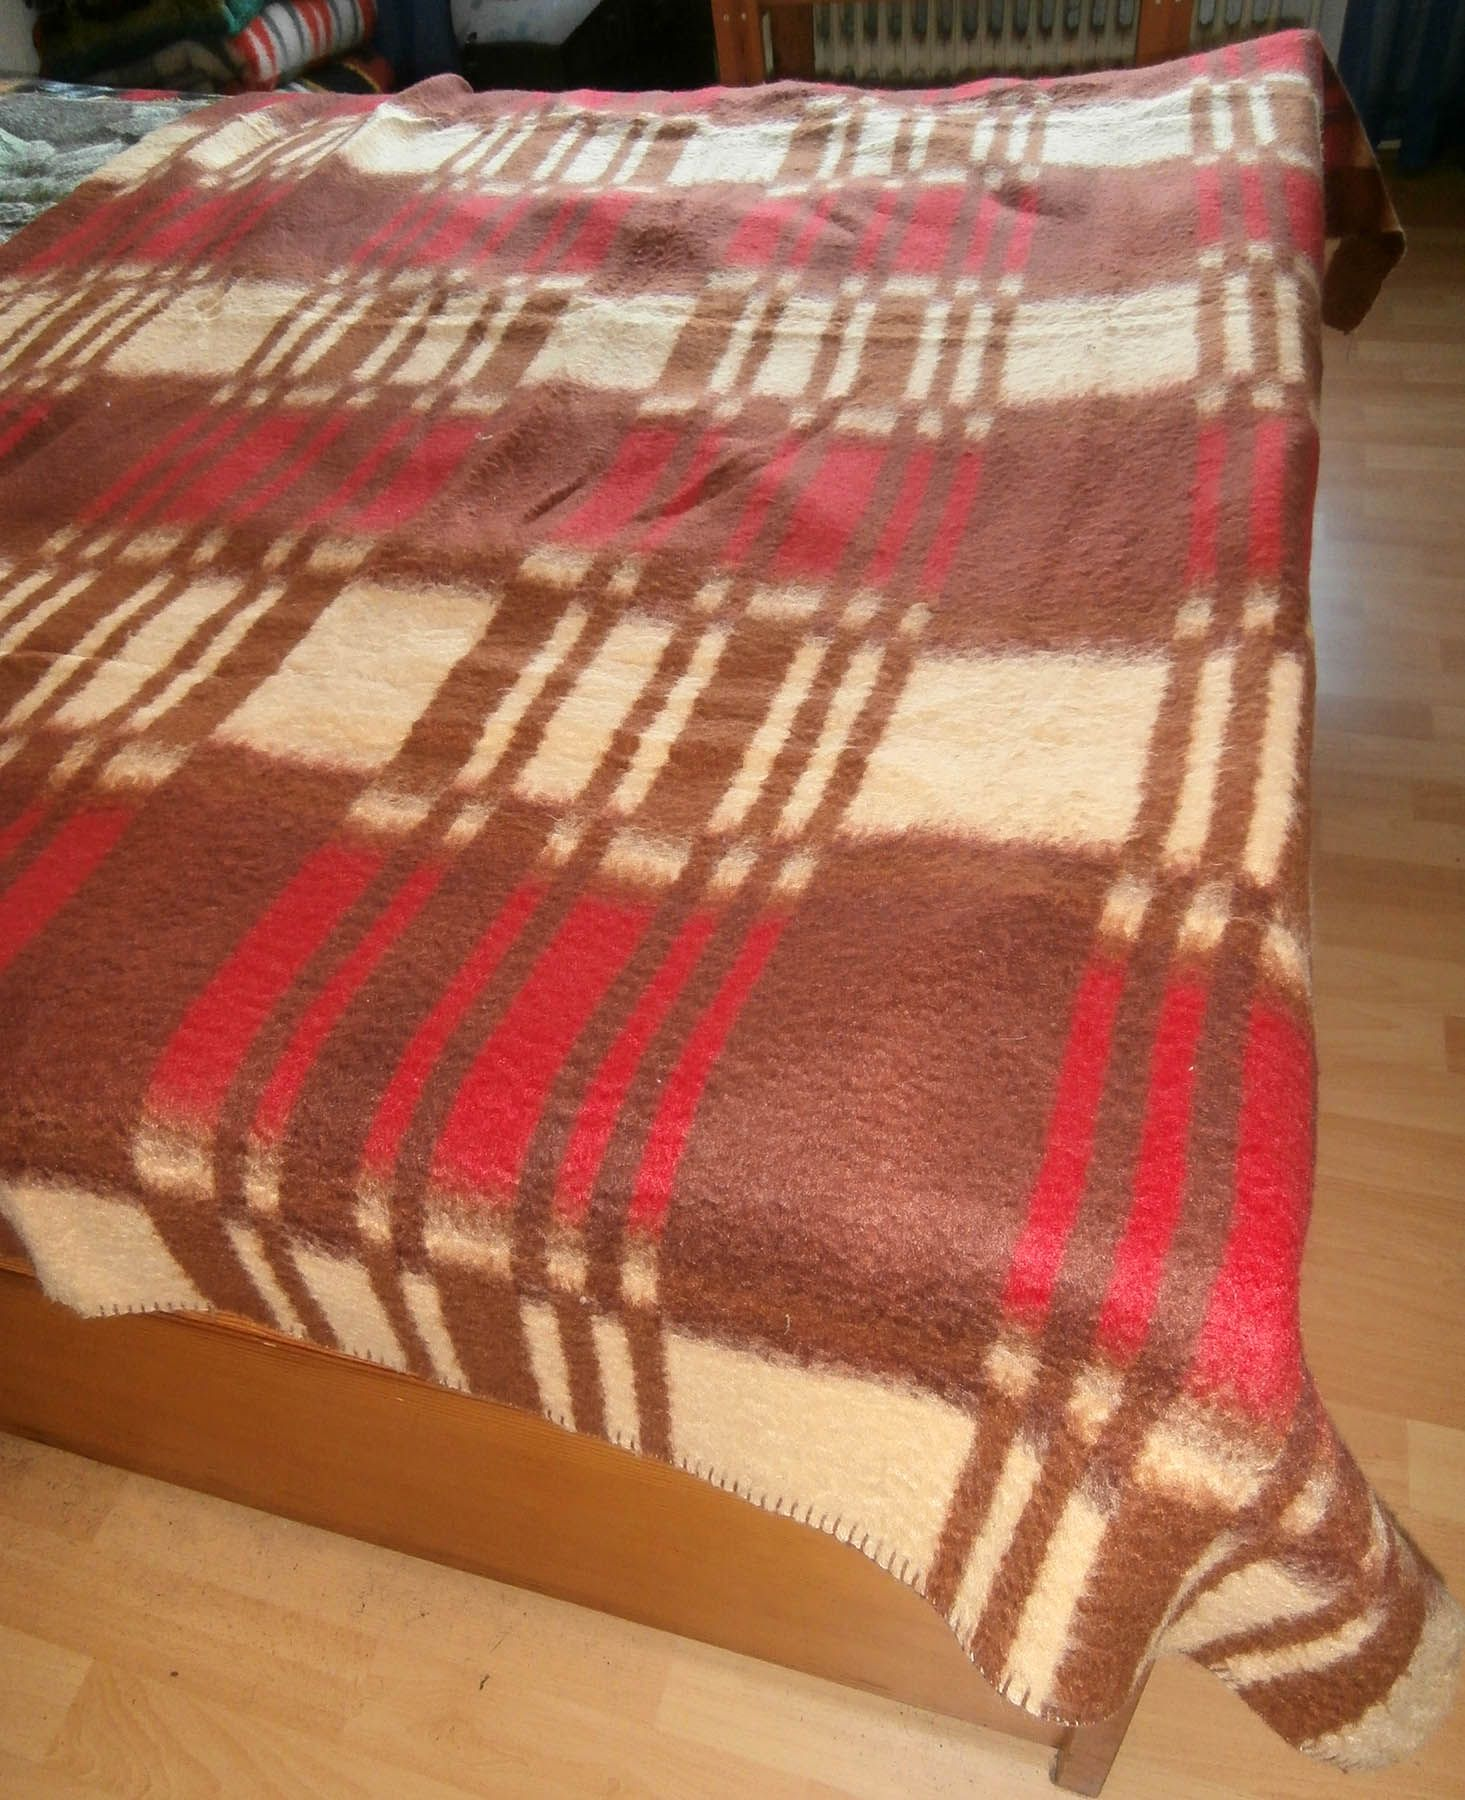 Retro Vintage Blanket Deken Wolldecke 50s 60s Carblanket Blankets Museum New In Our Collection May 2018 Wolldecke Second Hand C A